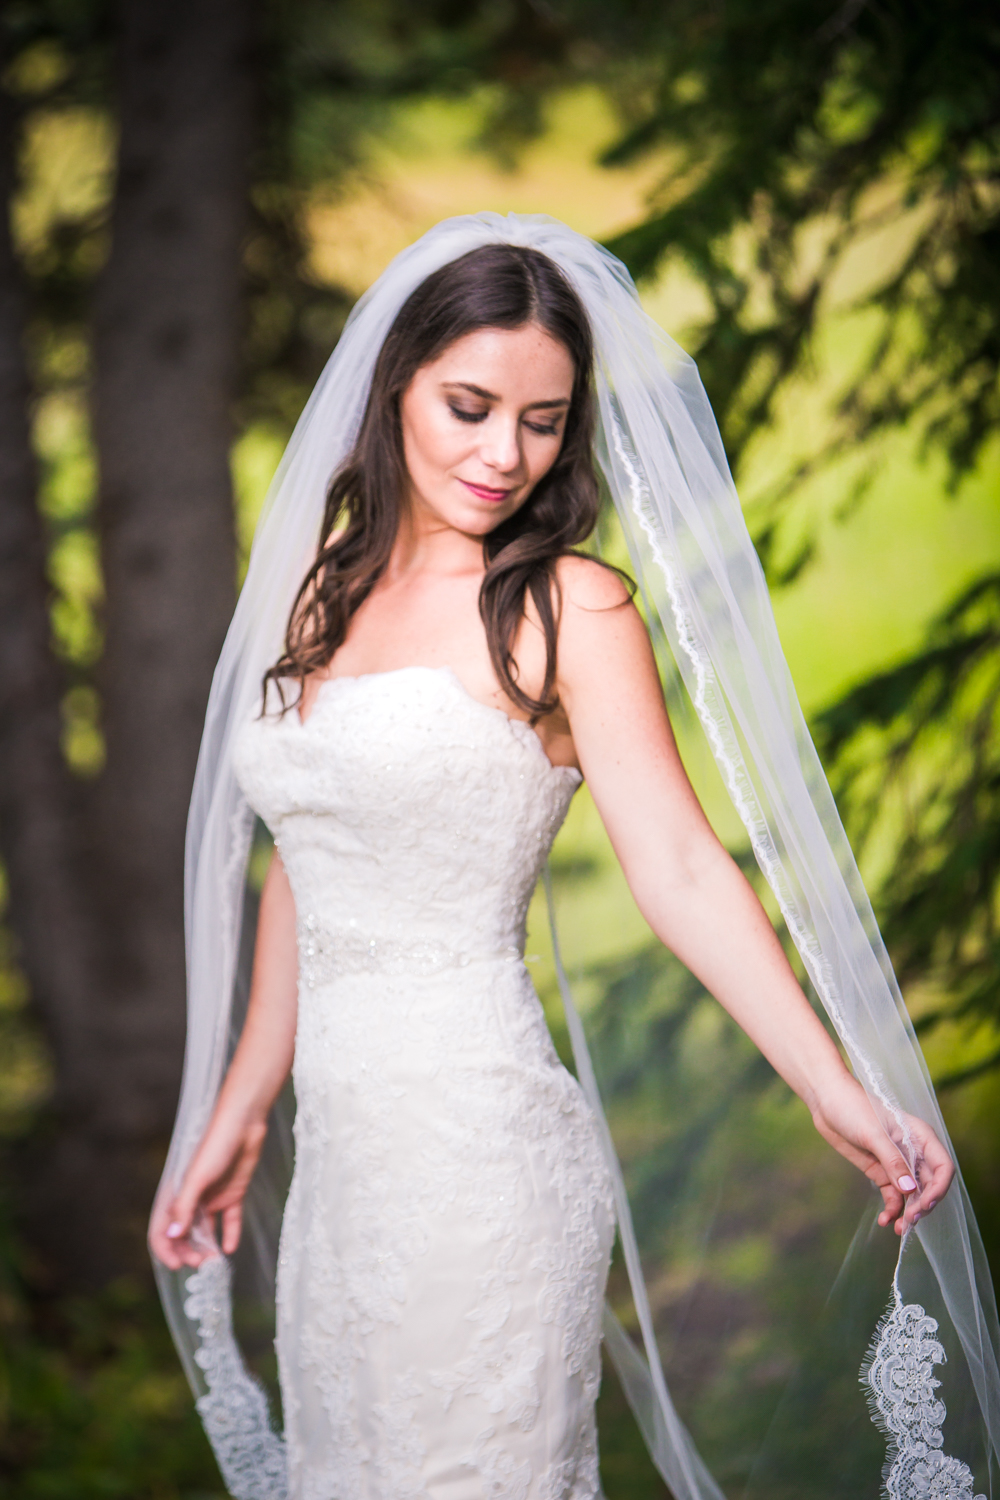 The bride with her long Veil at the 10th Resturant.Vail Colorado Wedding photographed by JMGant Photography.